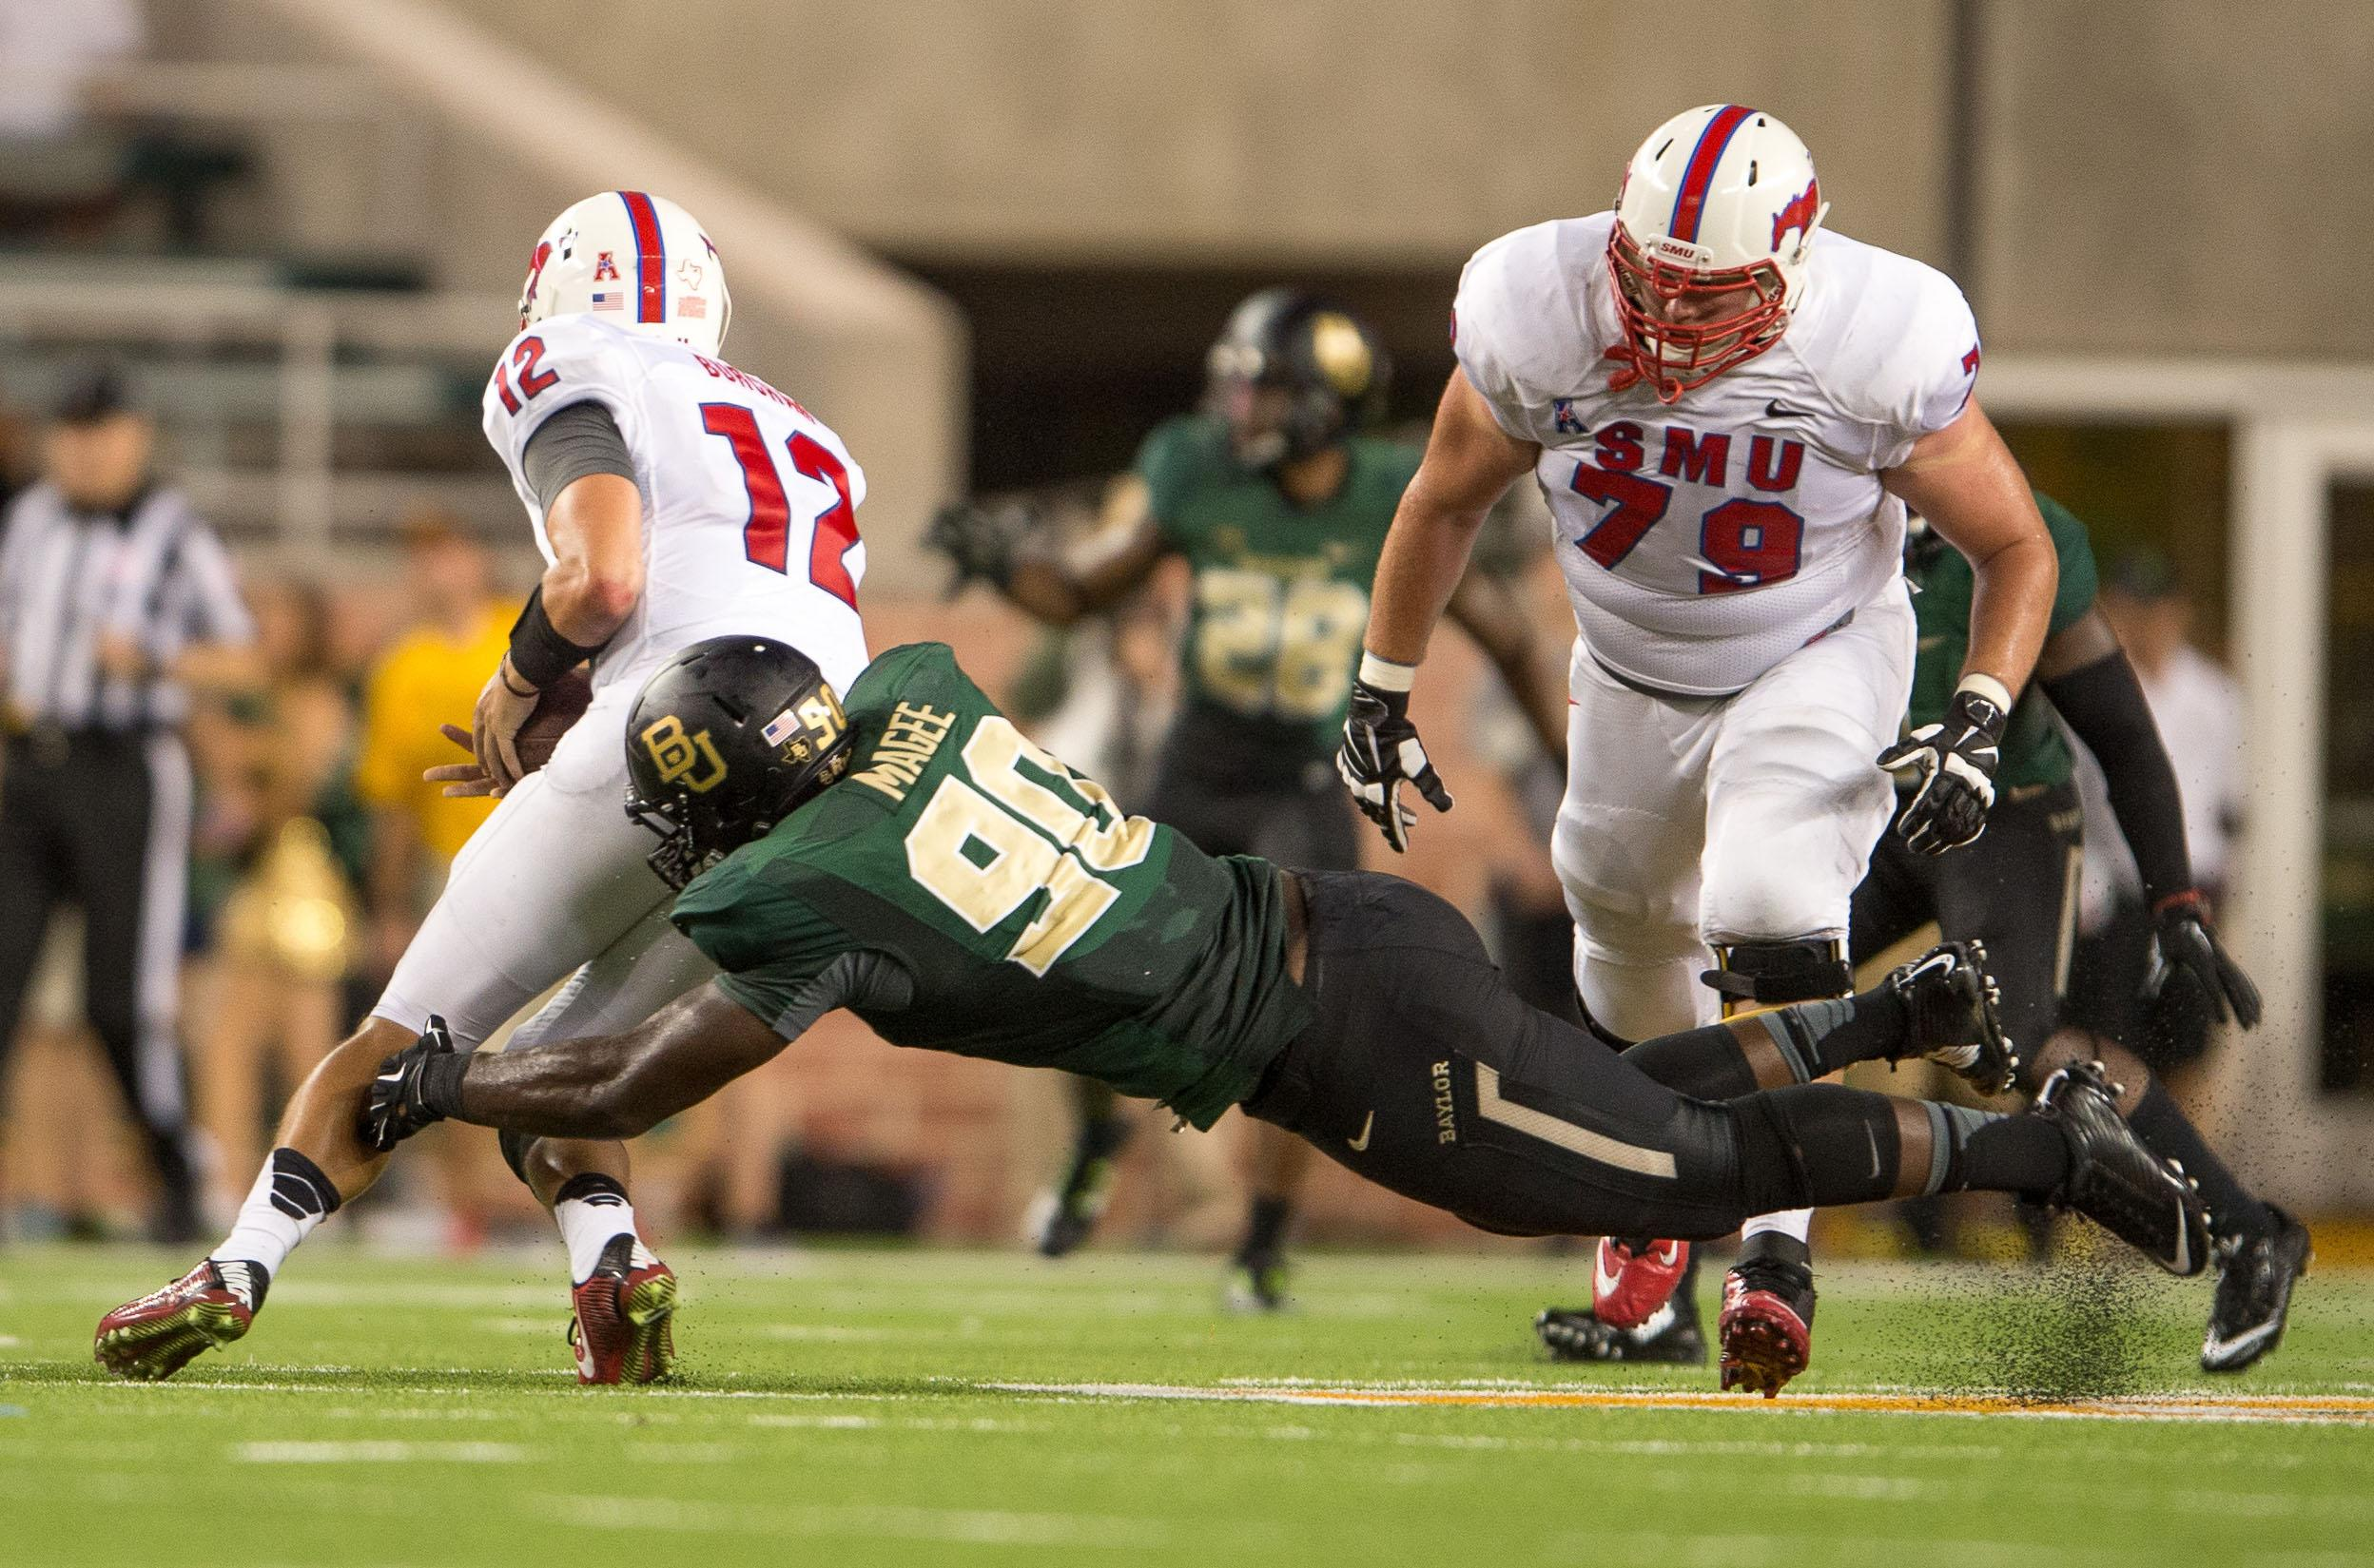 DL Javonte Magee not on Baylor's spring football roster